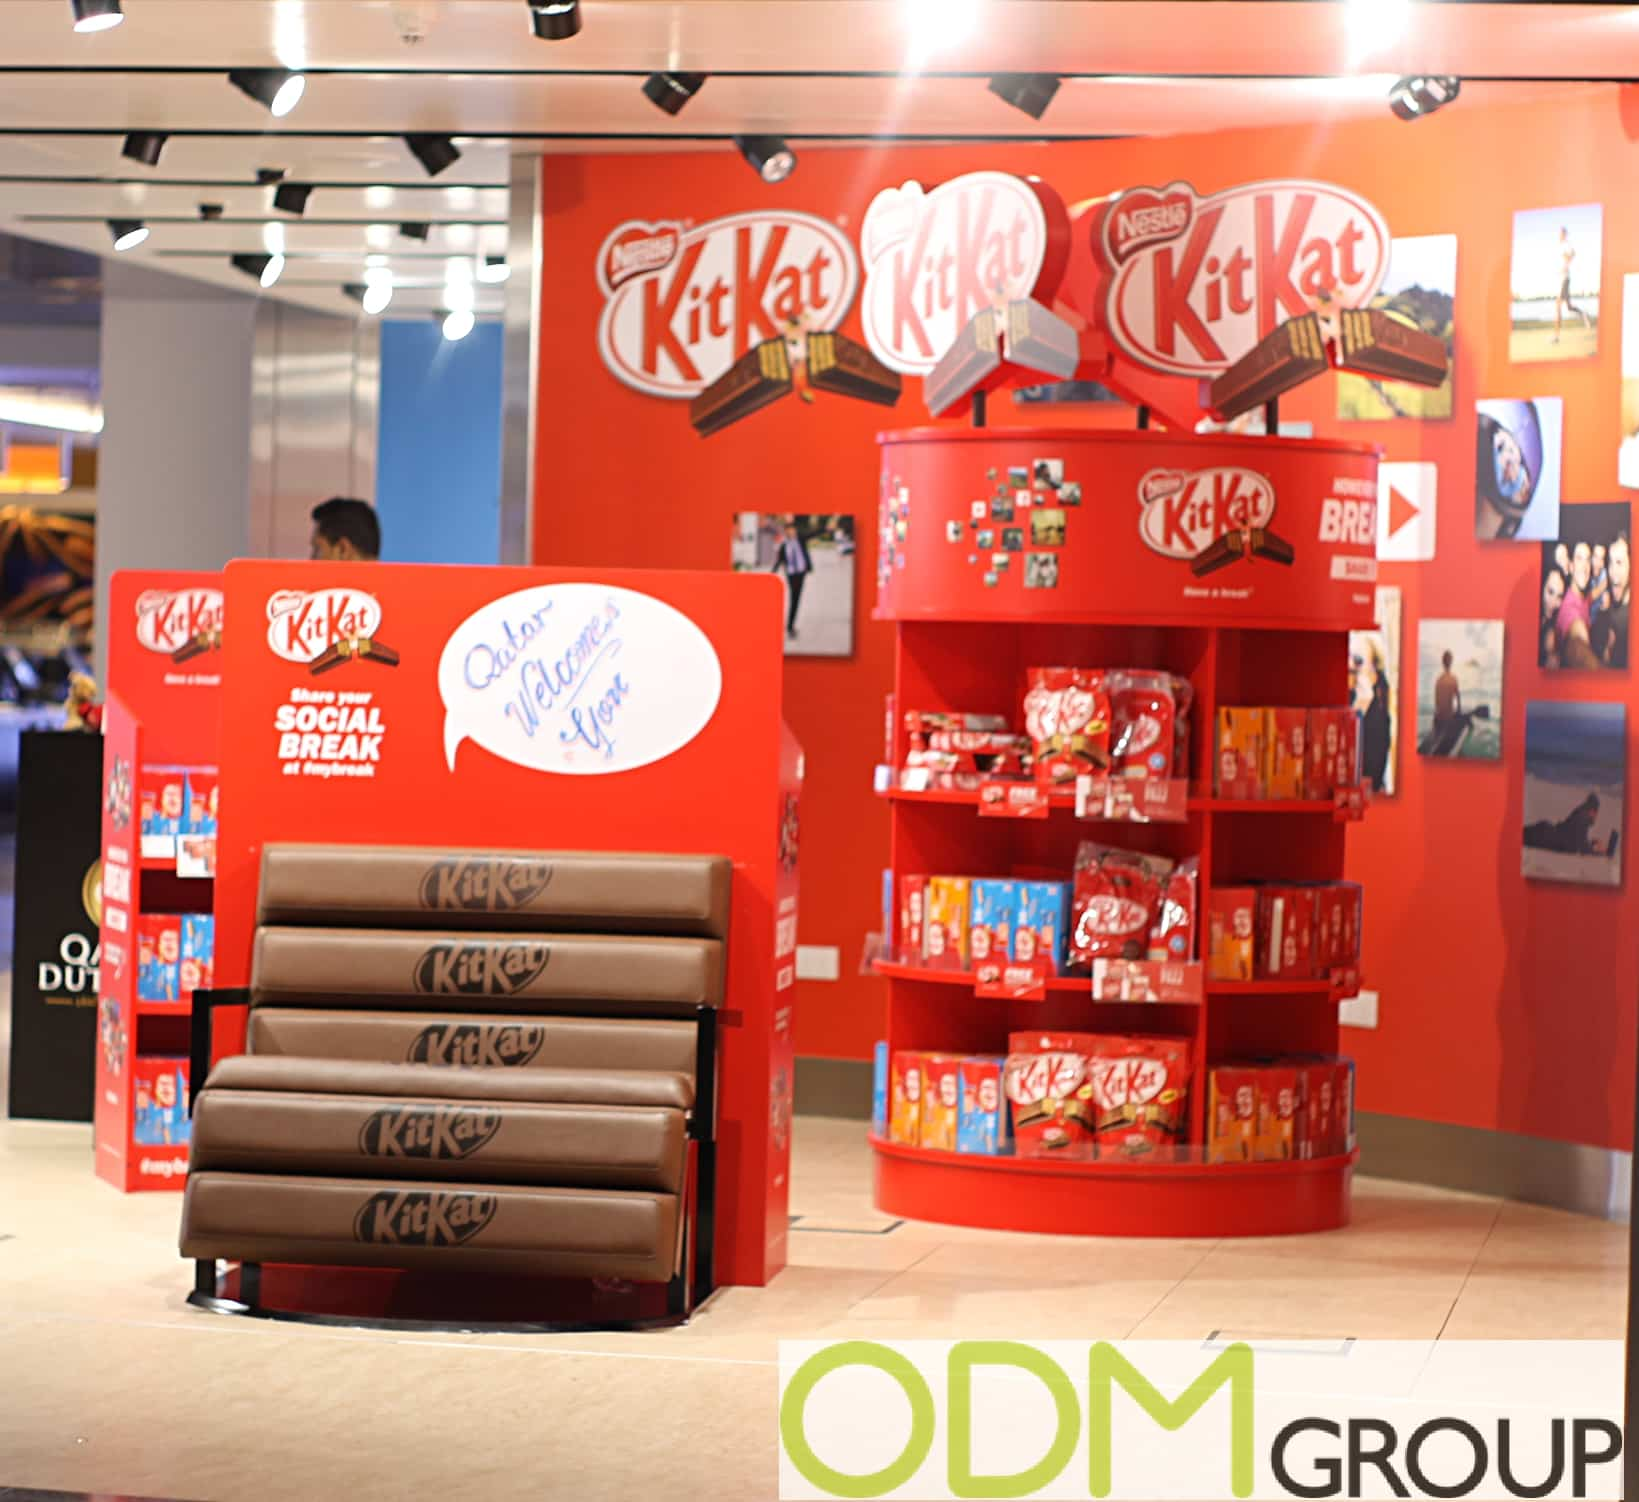 Say It Creative Personalized Shop: Kit Kat Duty Free Advertising: Unique Instore Display